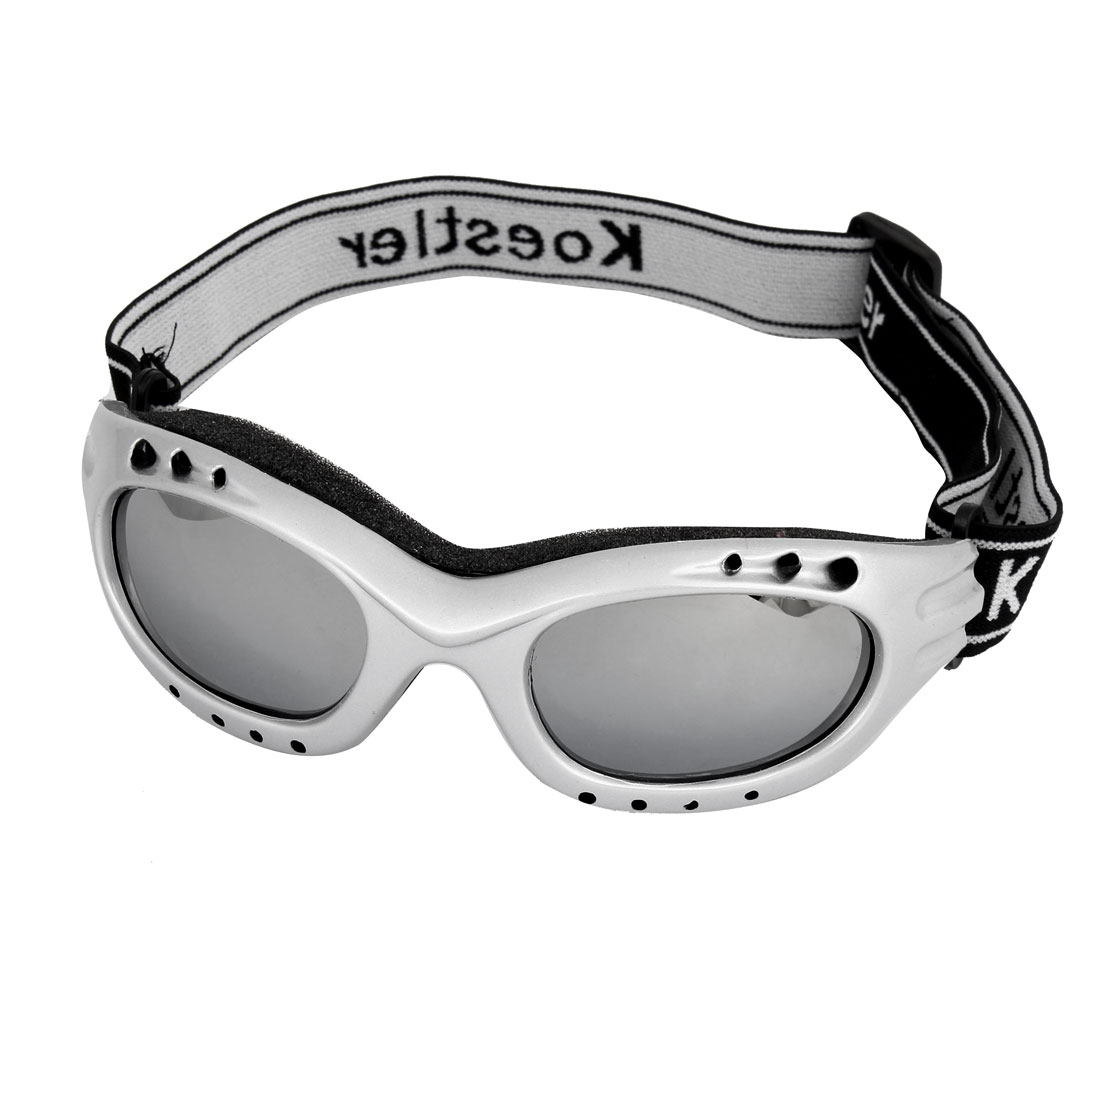 Unisex Black Adjustable Strap Windproof Eye Protective Motorcycle Skiing Goggles Gray